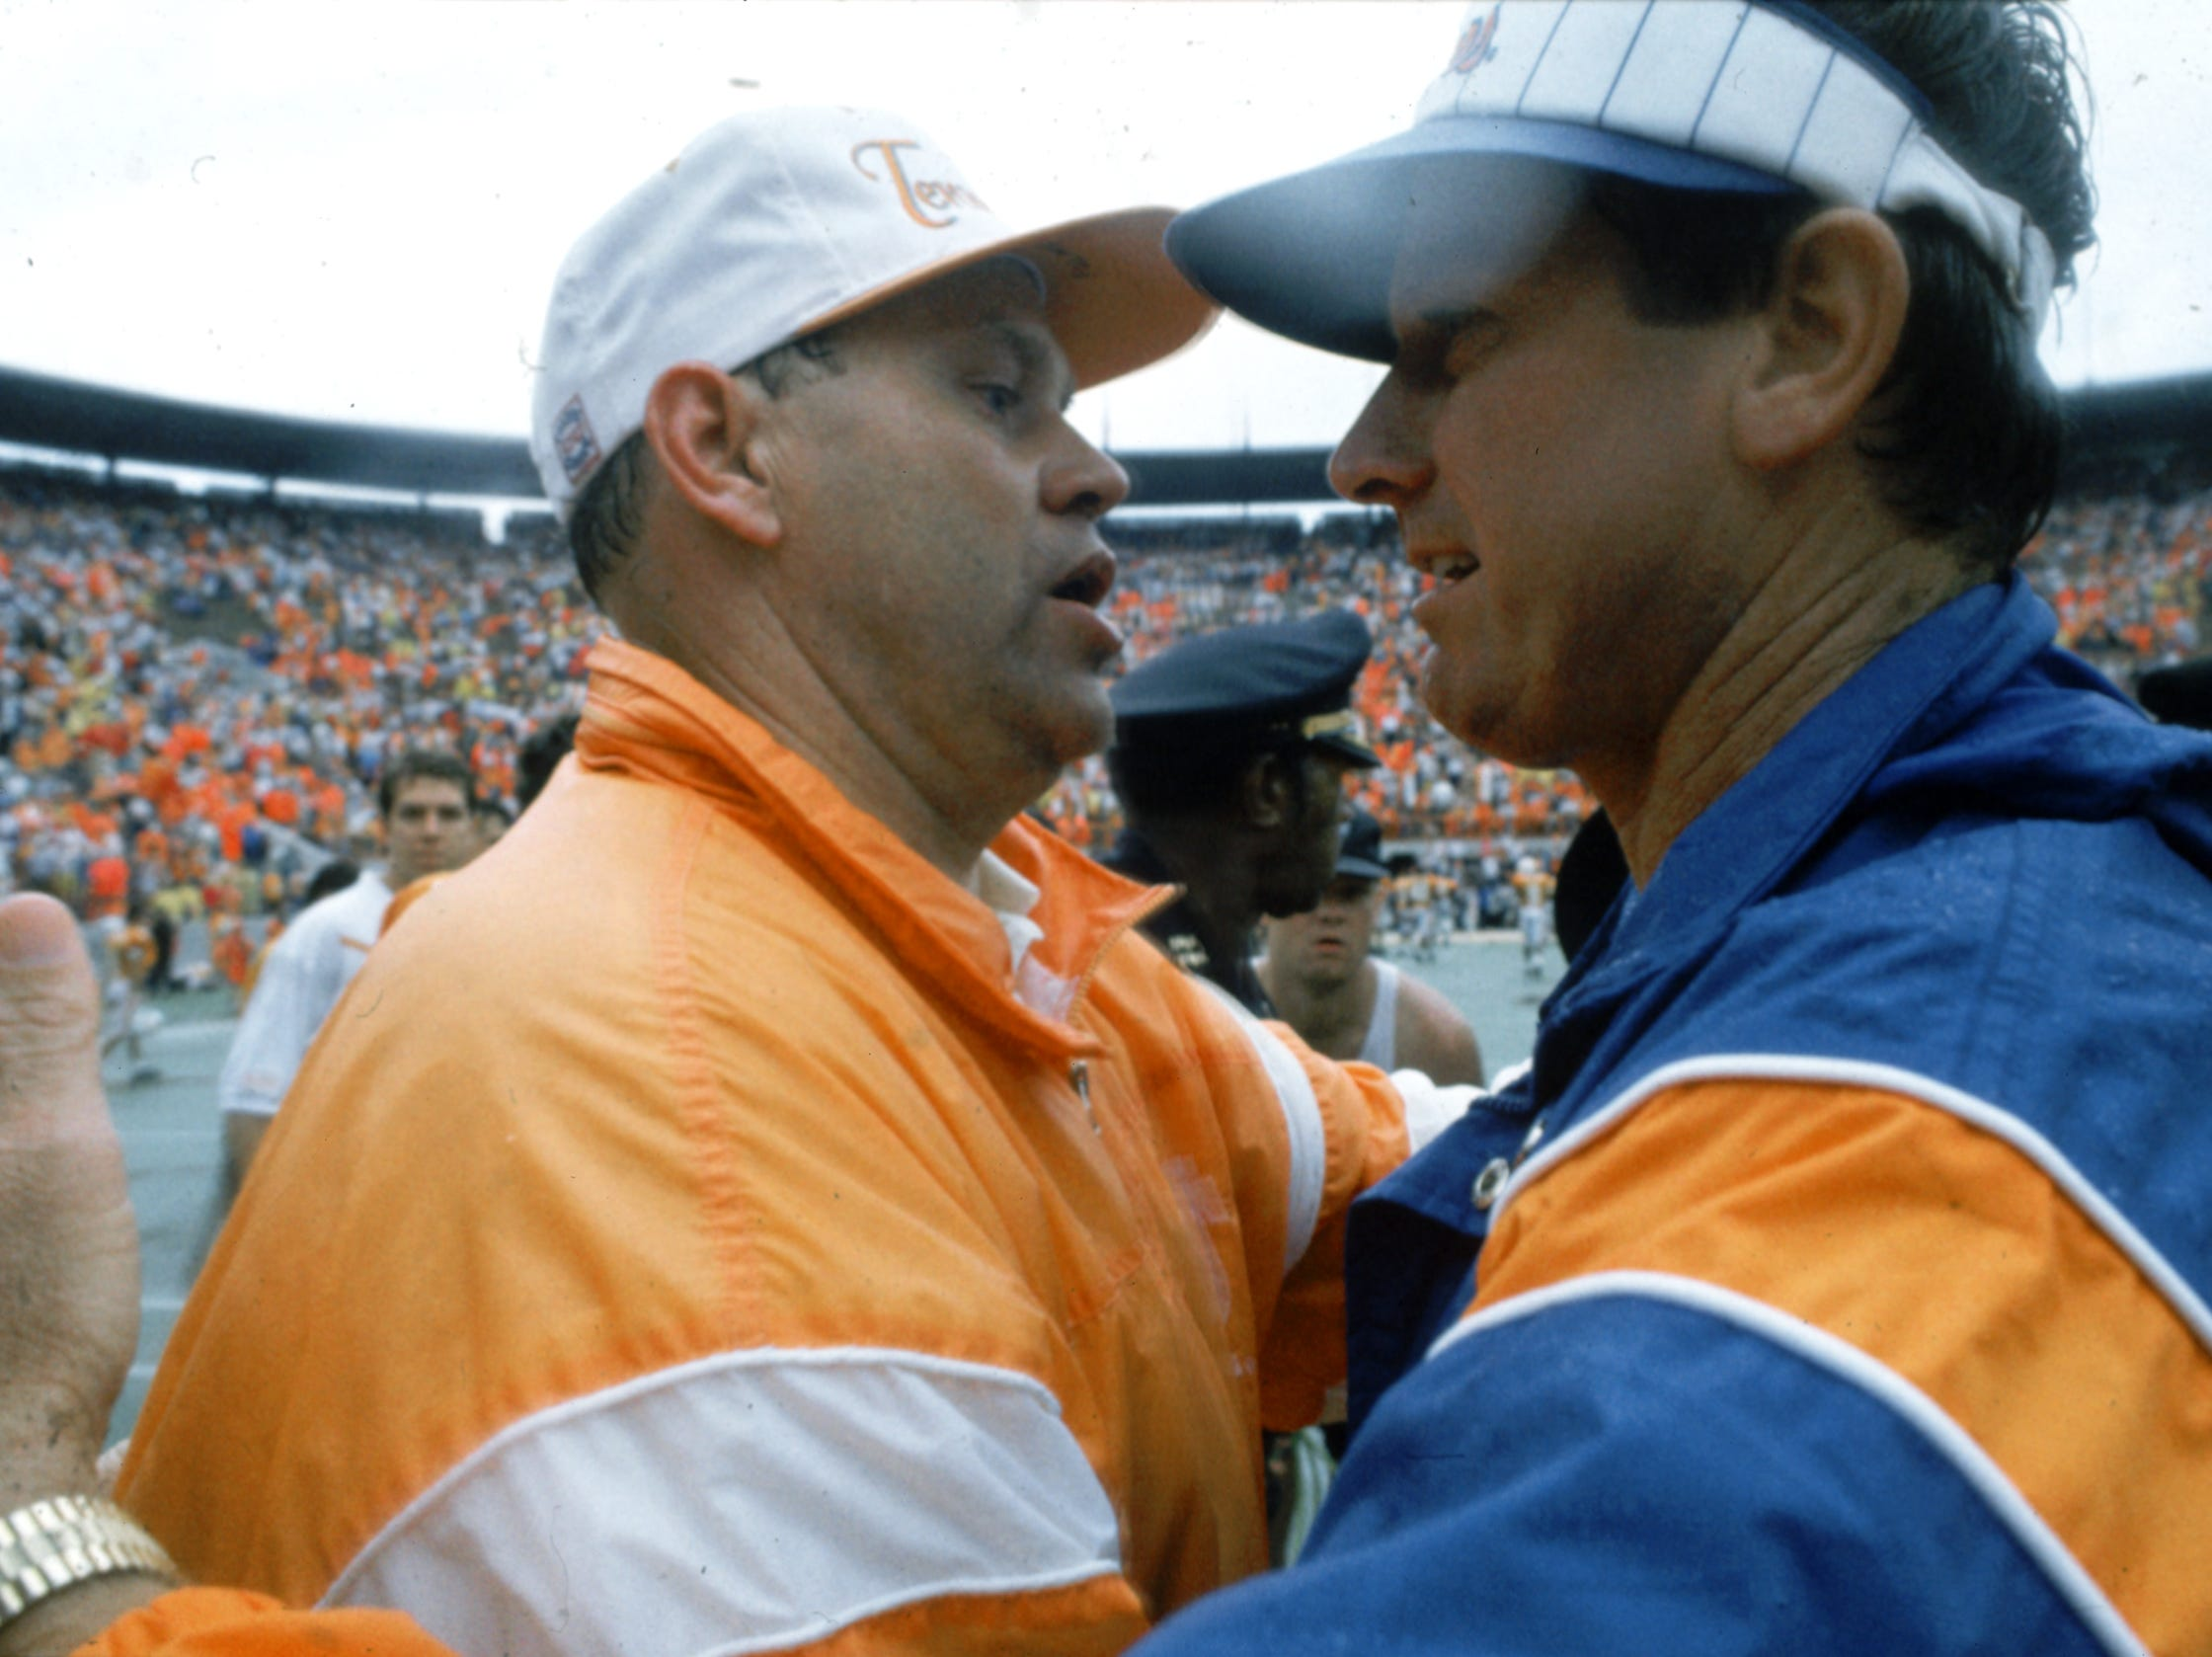 University of Tennessee football Coach Phillip Fulmer shares a pat on the back with then University of Florida Coach Steve Spurrier, December 20, 1992. Fulmer lost to Spurrier again Saturday 110108 as UT fell to the University of South Carolina 27-6.